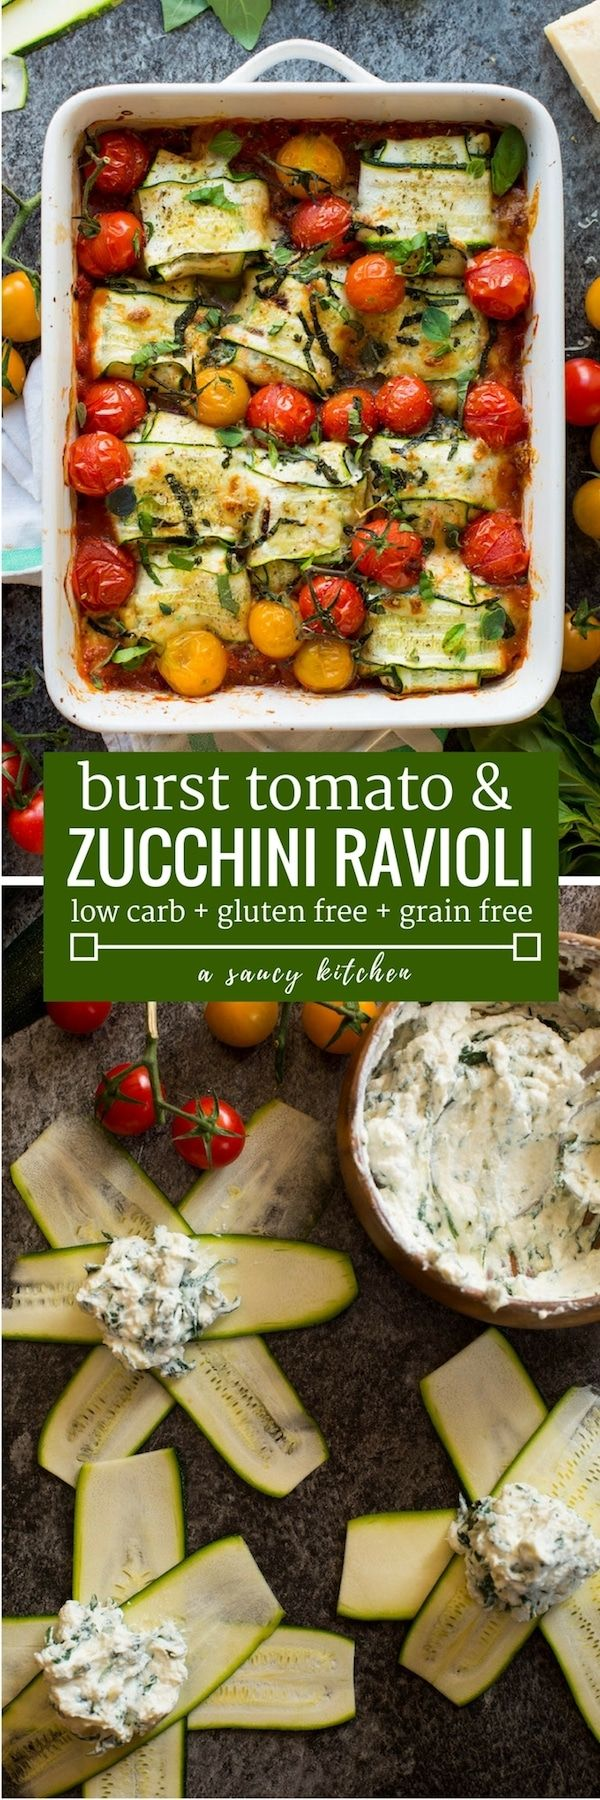 Veggie filled zucchini ravioli stuffed with ricotta and baked over a simple marinara sauce with burst cherry tomatoes. | Gluten Free Grain Free Low Carb